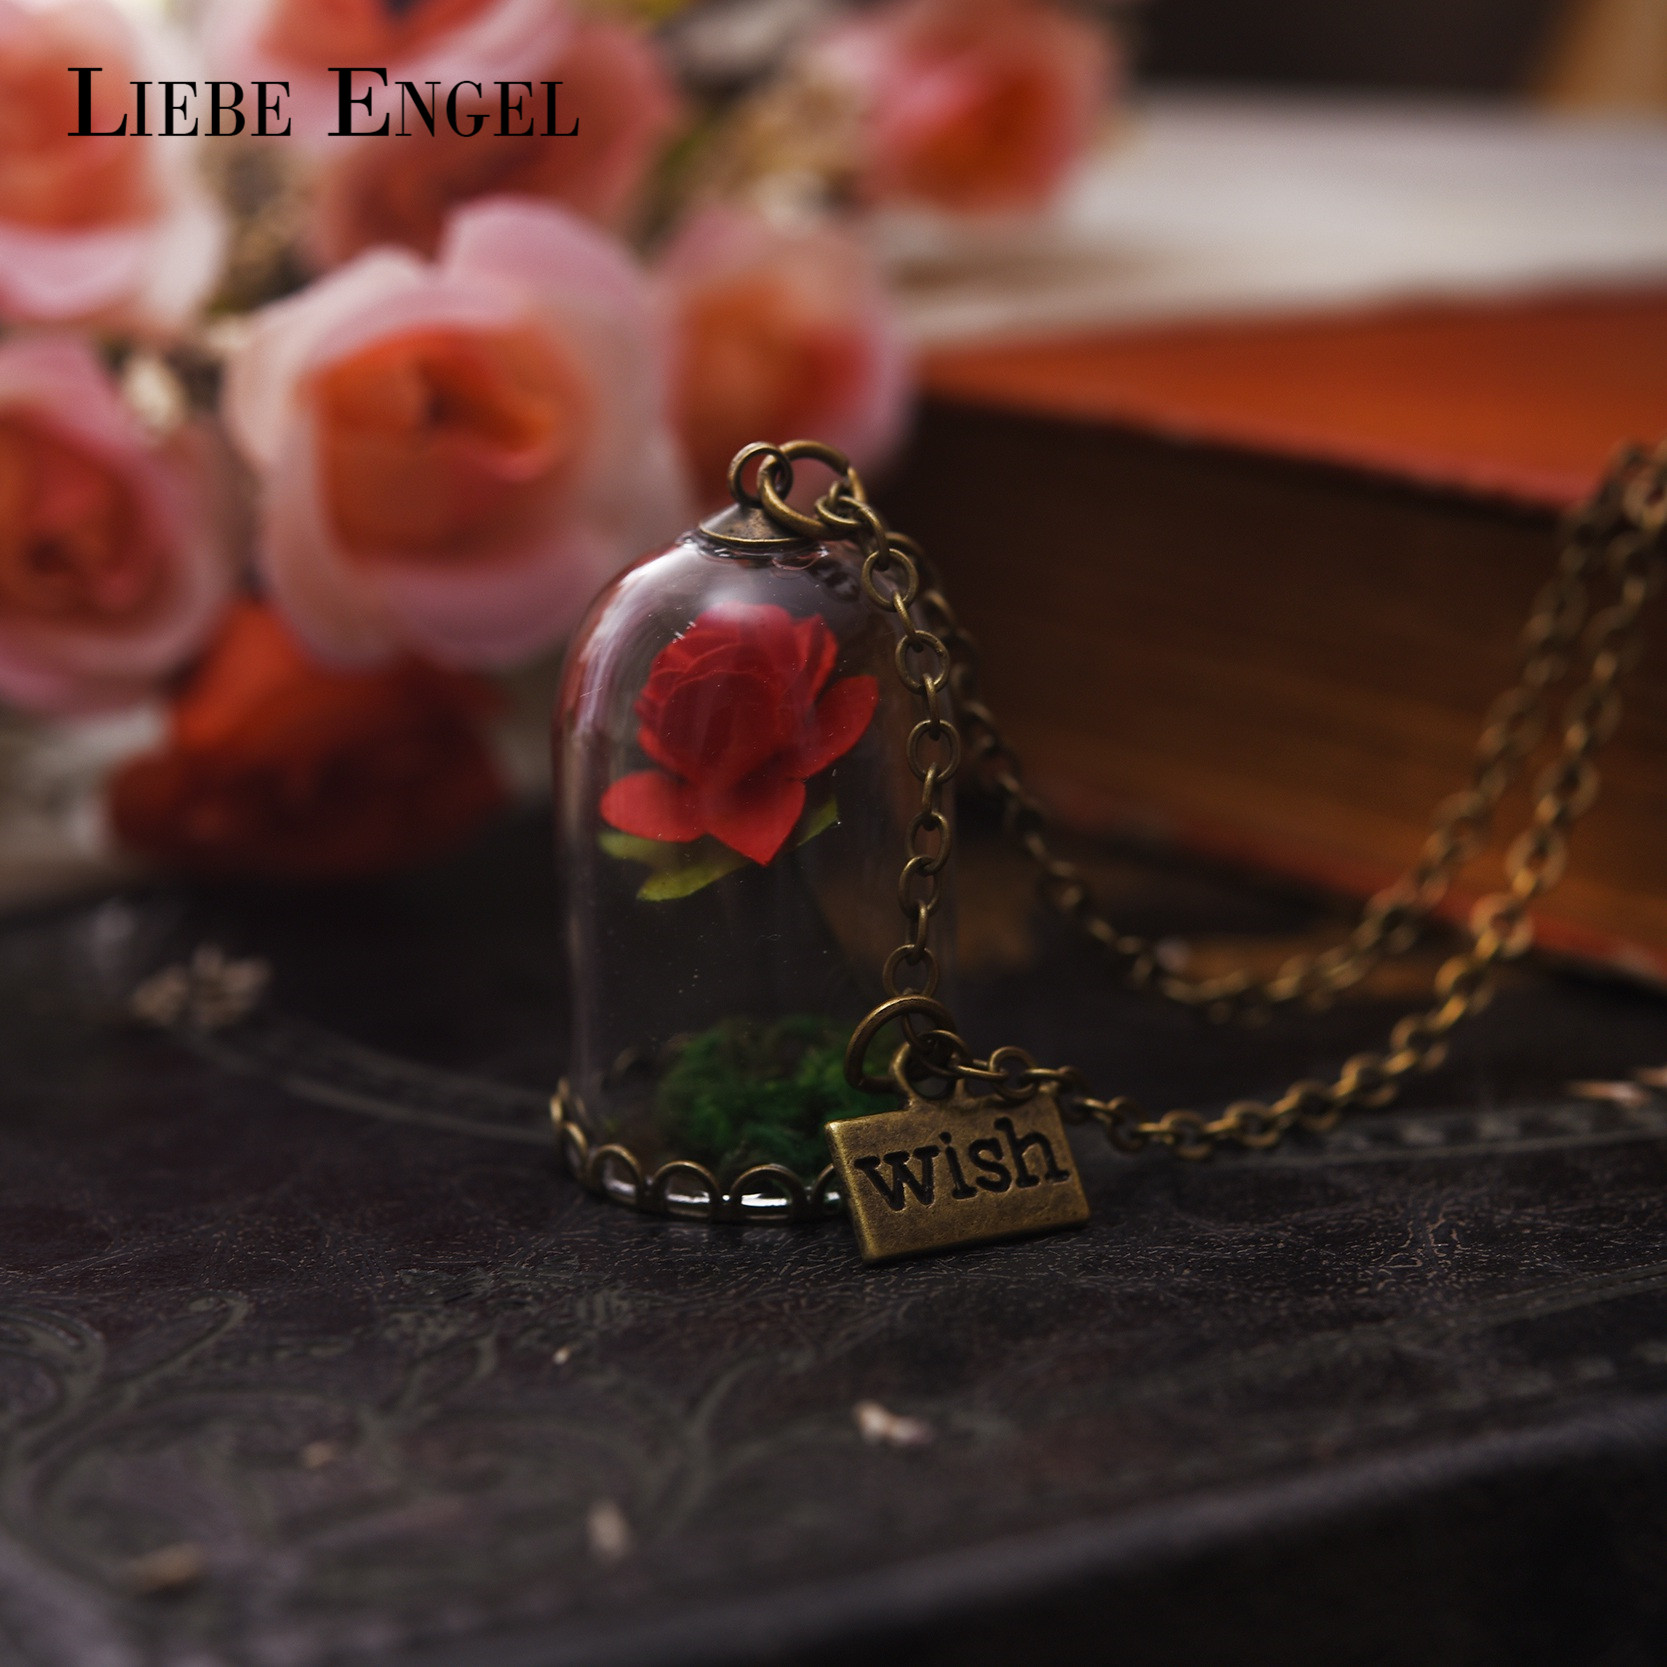 LIEBE ENGEL Maxi Choker Wish Glass Bottle Dried Flower Pendant Necklace Vintage Chain Women Fashion Jewelry Beauty And The Beast